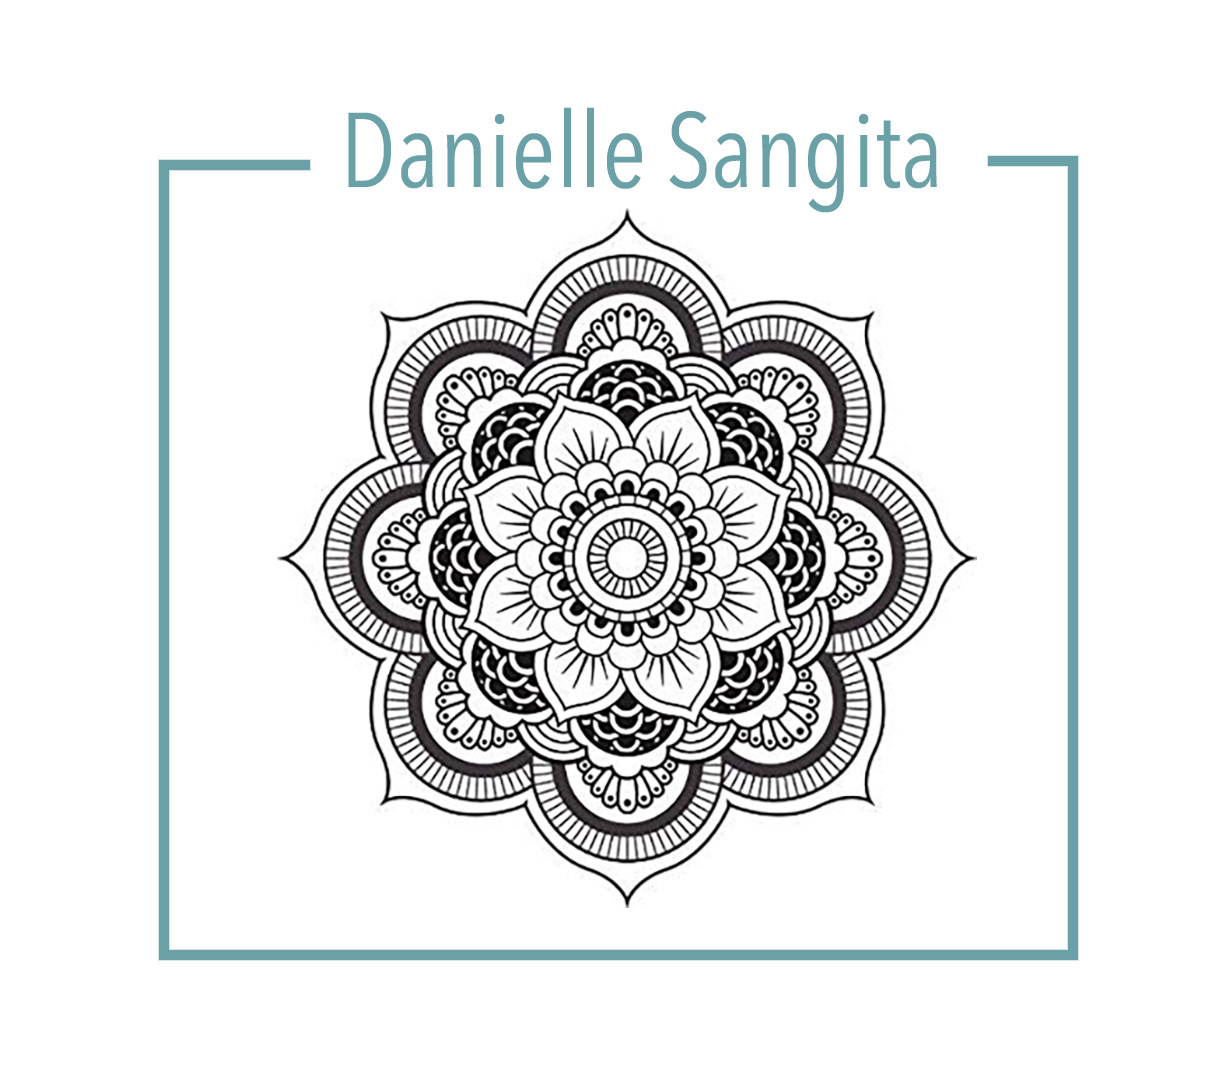 Massage, Yoga, and Ayurveda with Danielle Sangita